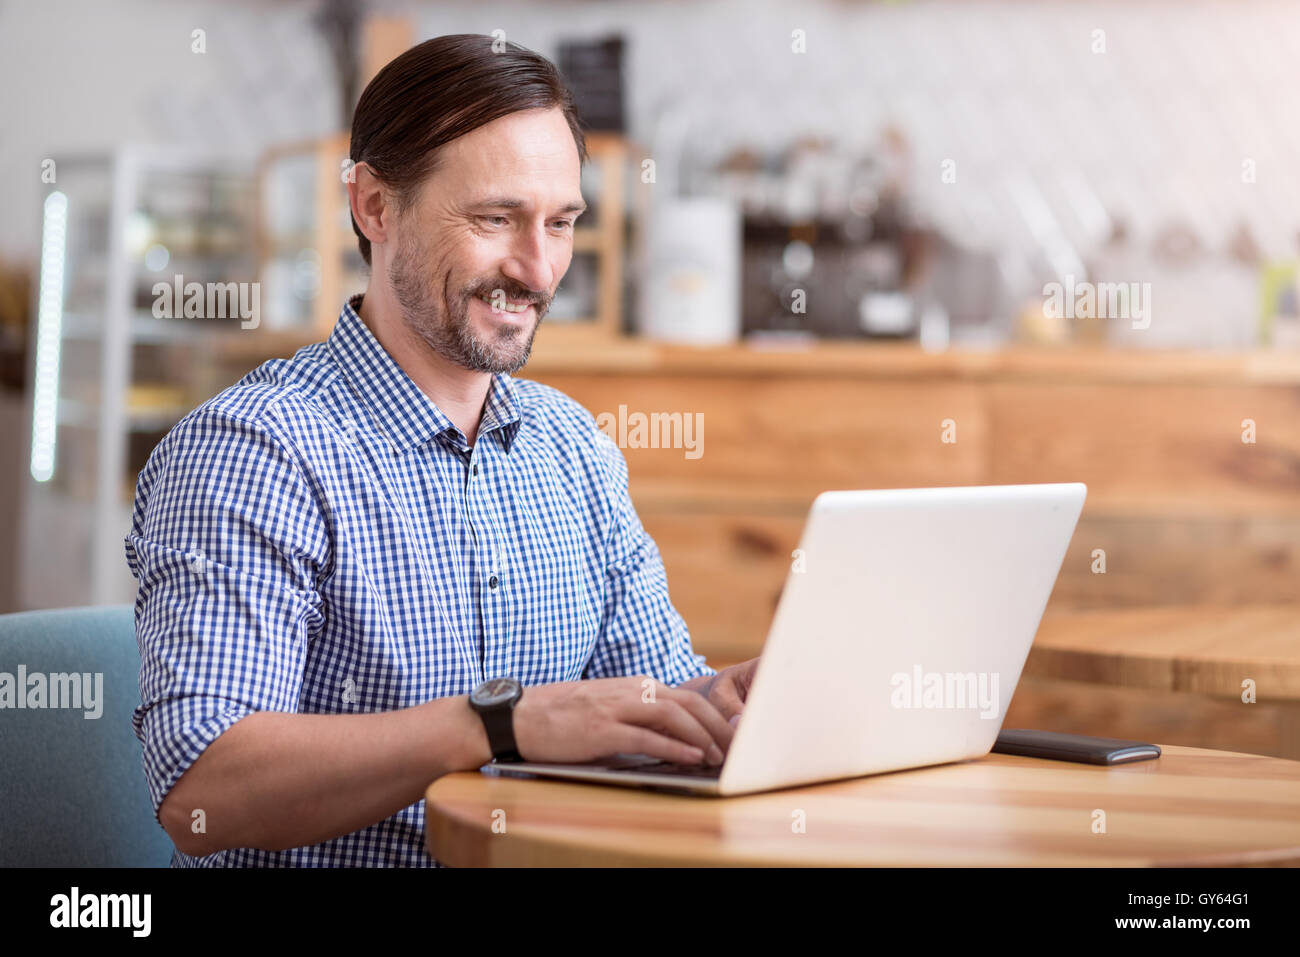 Handsome man using computer - Stock Image